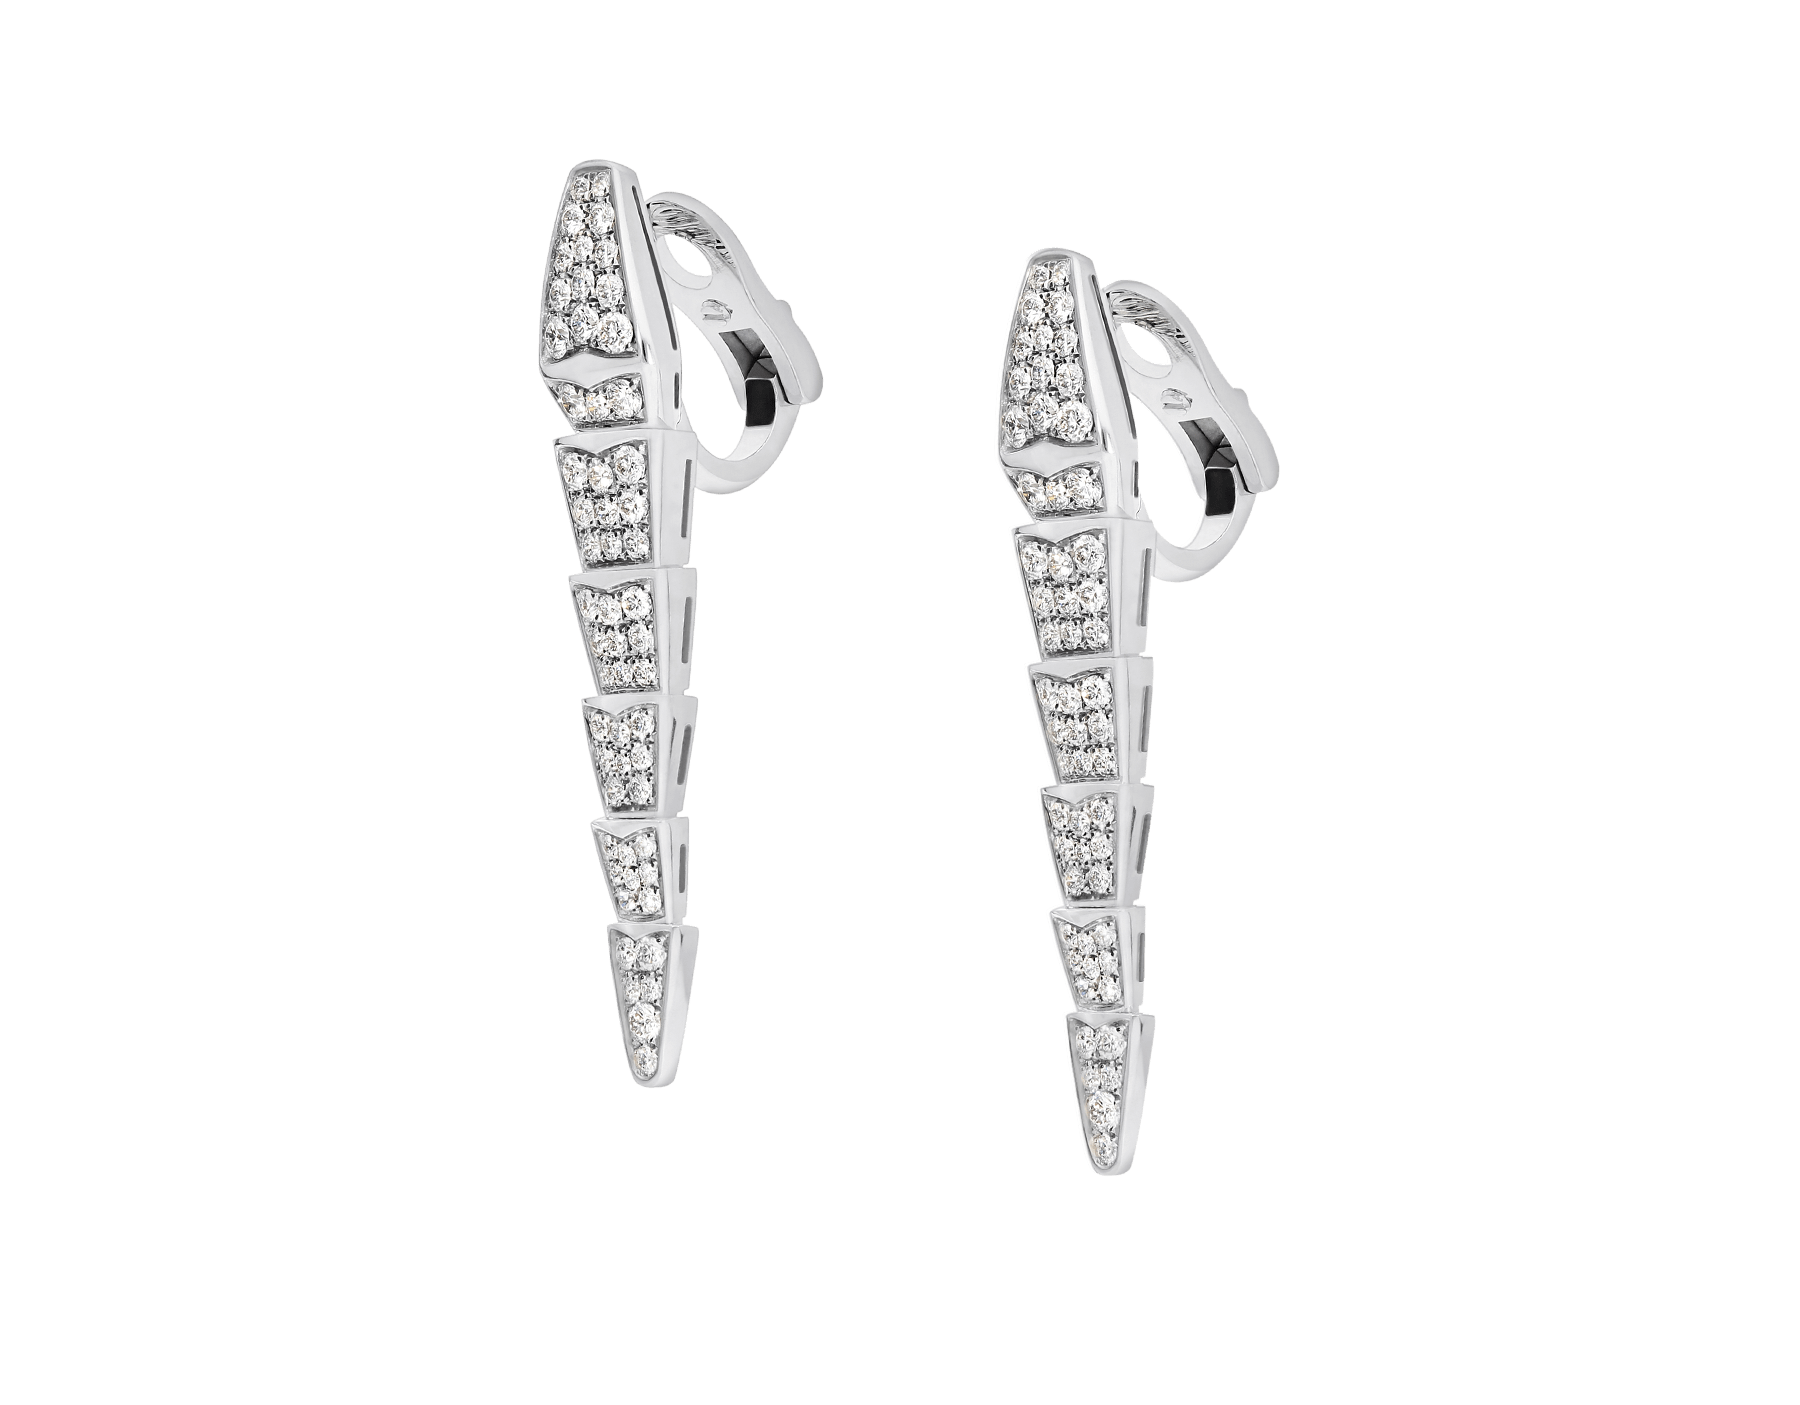 Serpenti earrings in 18 kt white gold, set with full pavé diamonds. 348320 image 2